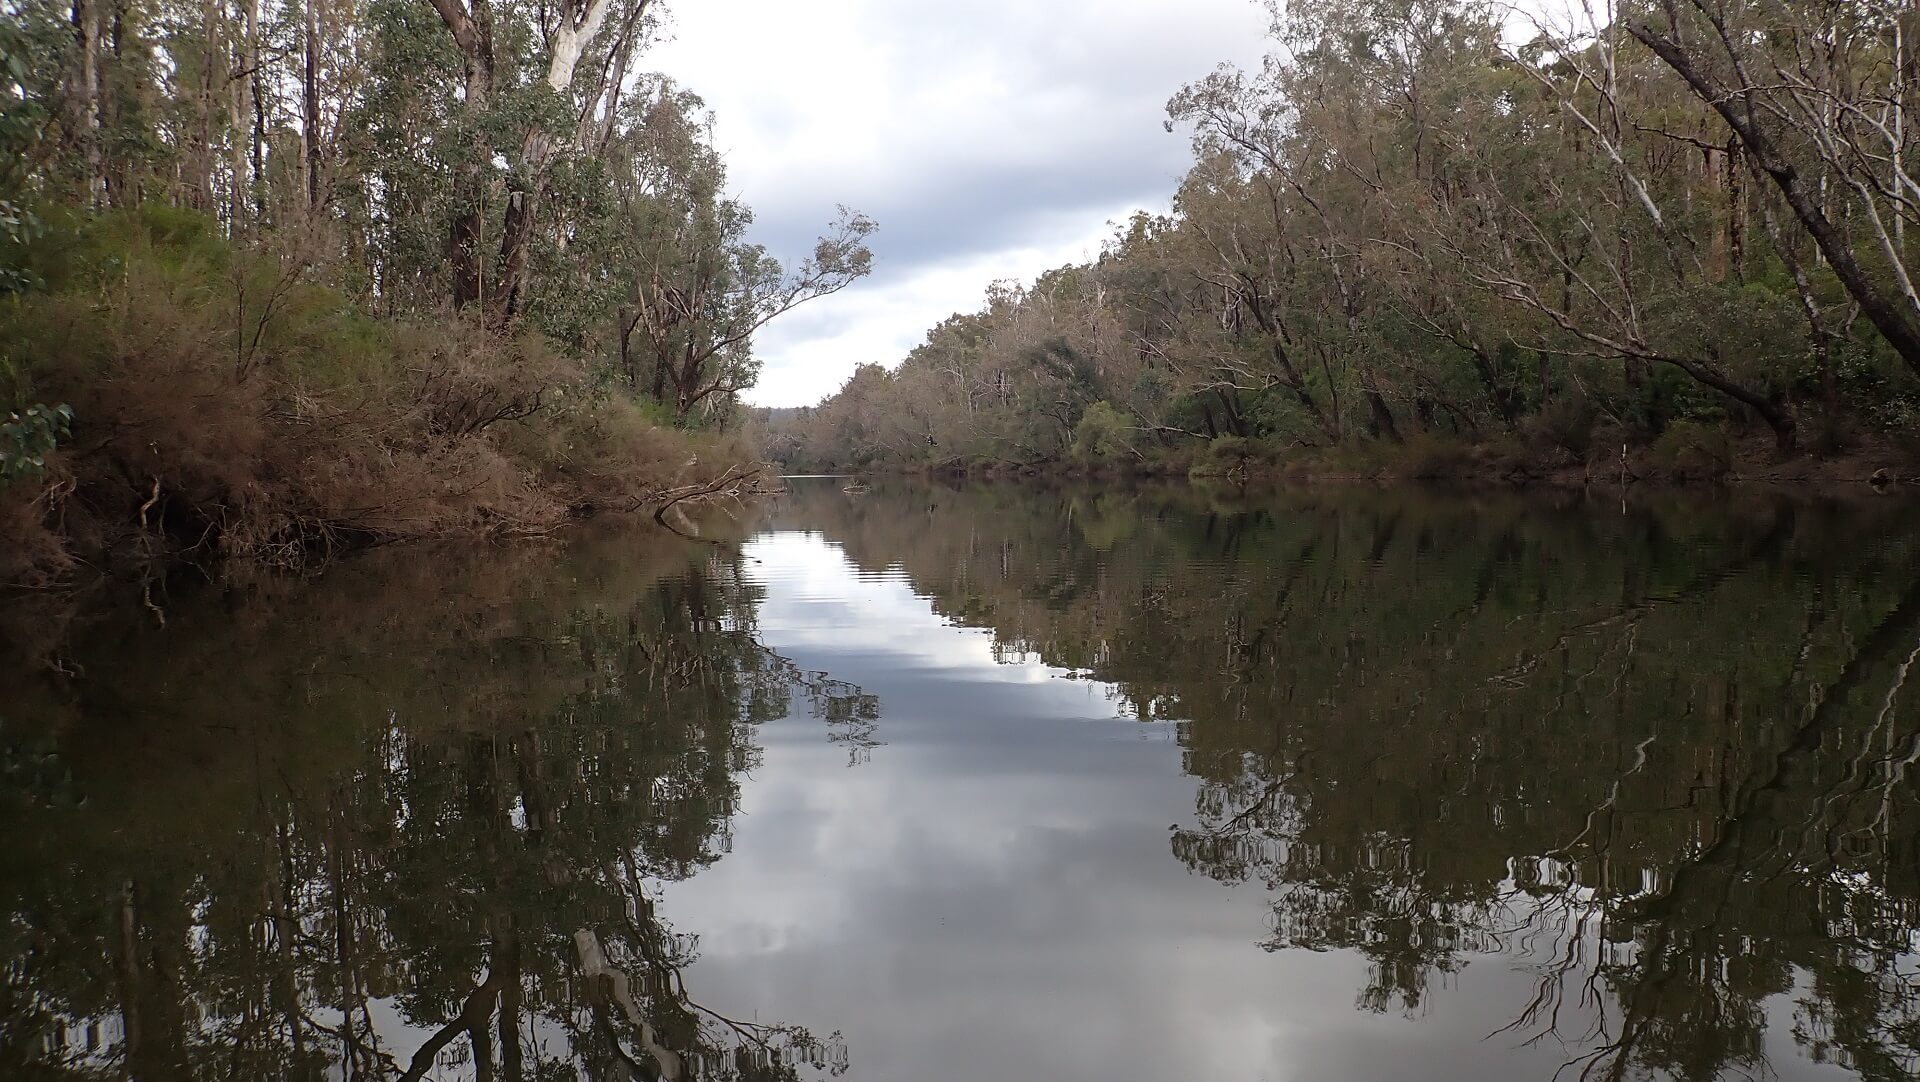 Murray River at the campsite on the Bibbulmun Track